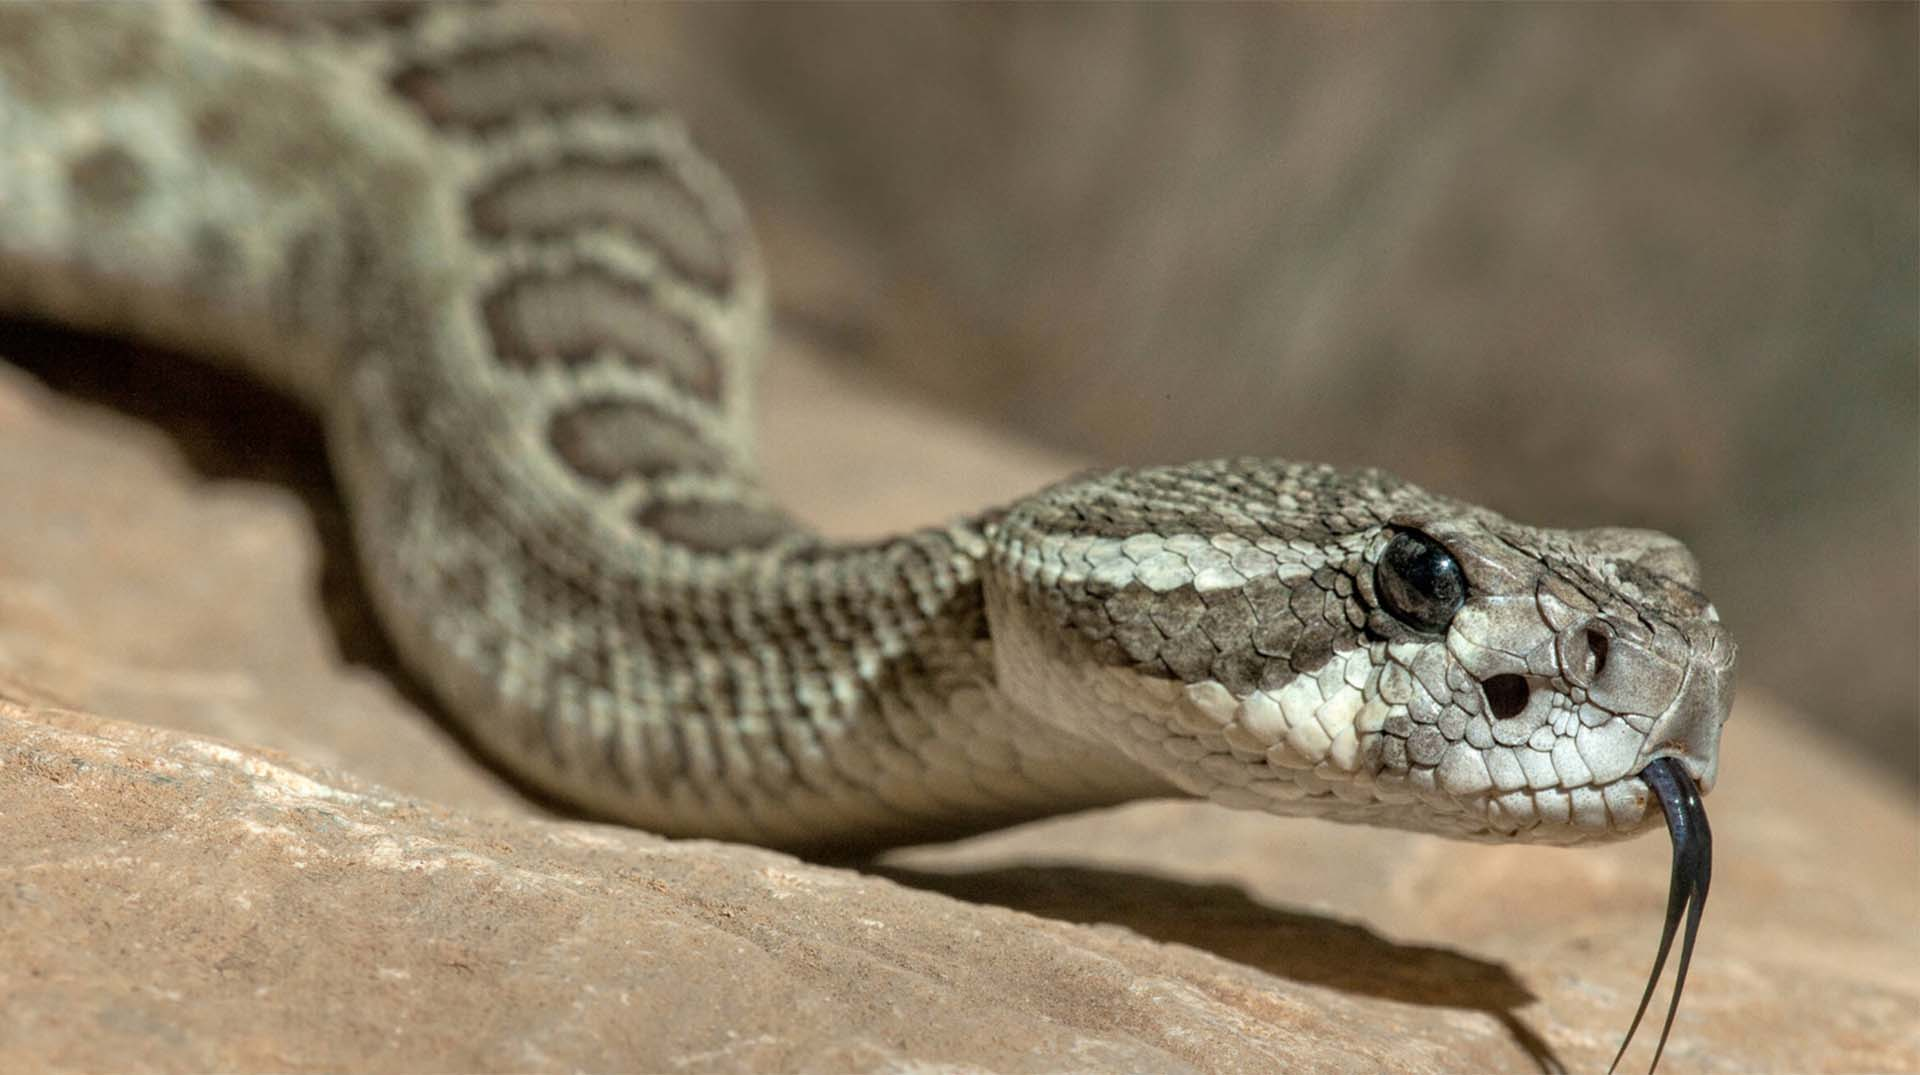 Rattlesnake | San Diego Zoo Animals & Plants